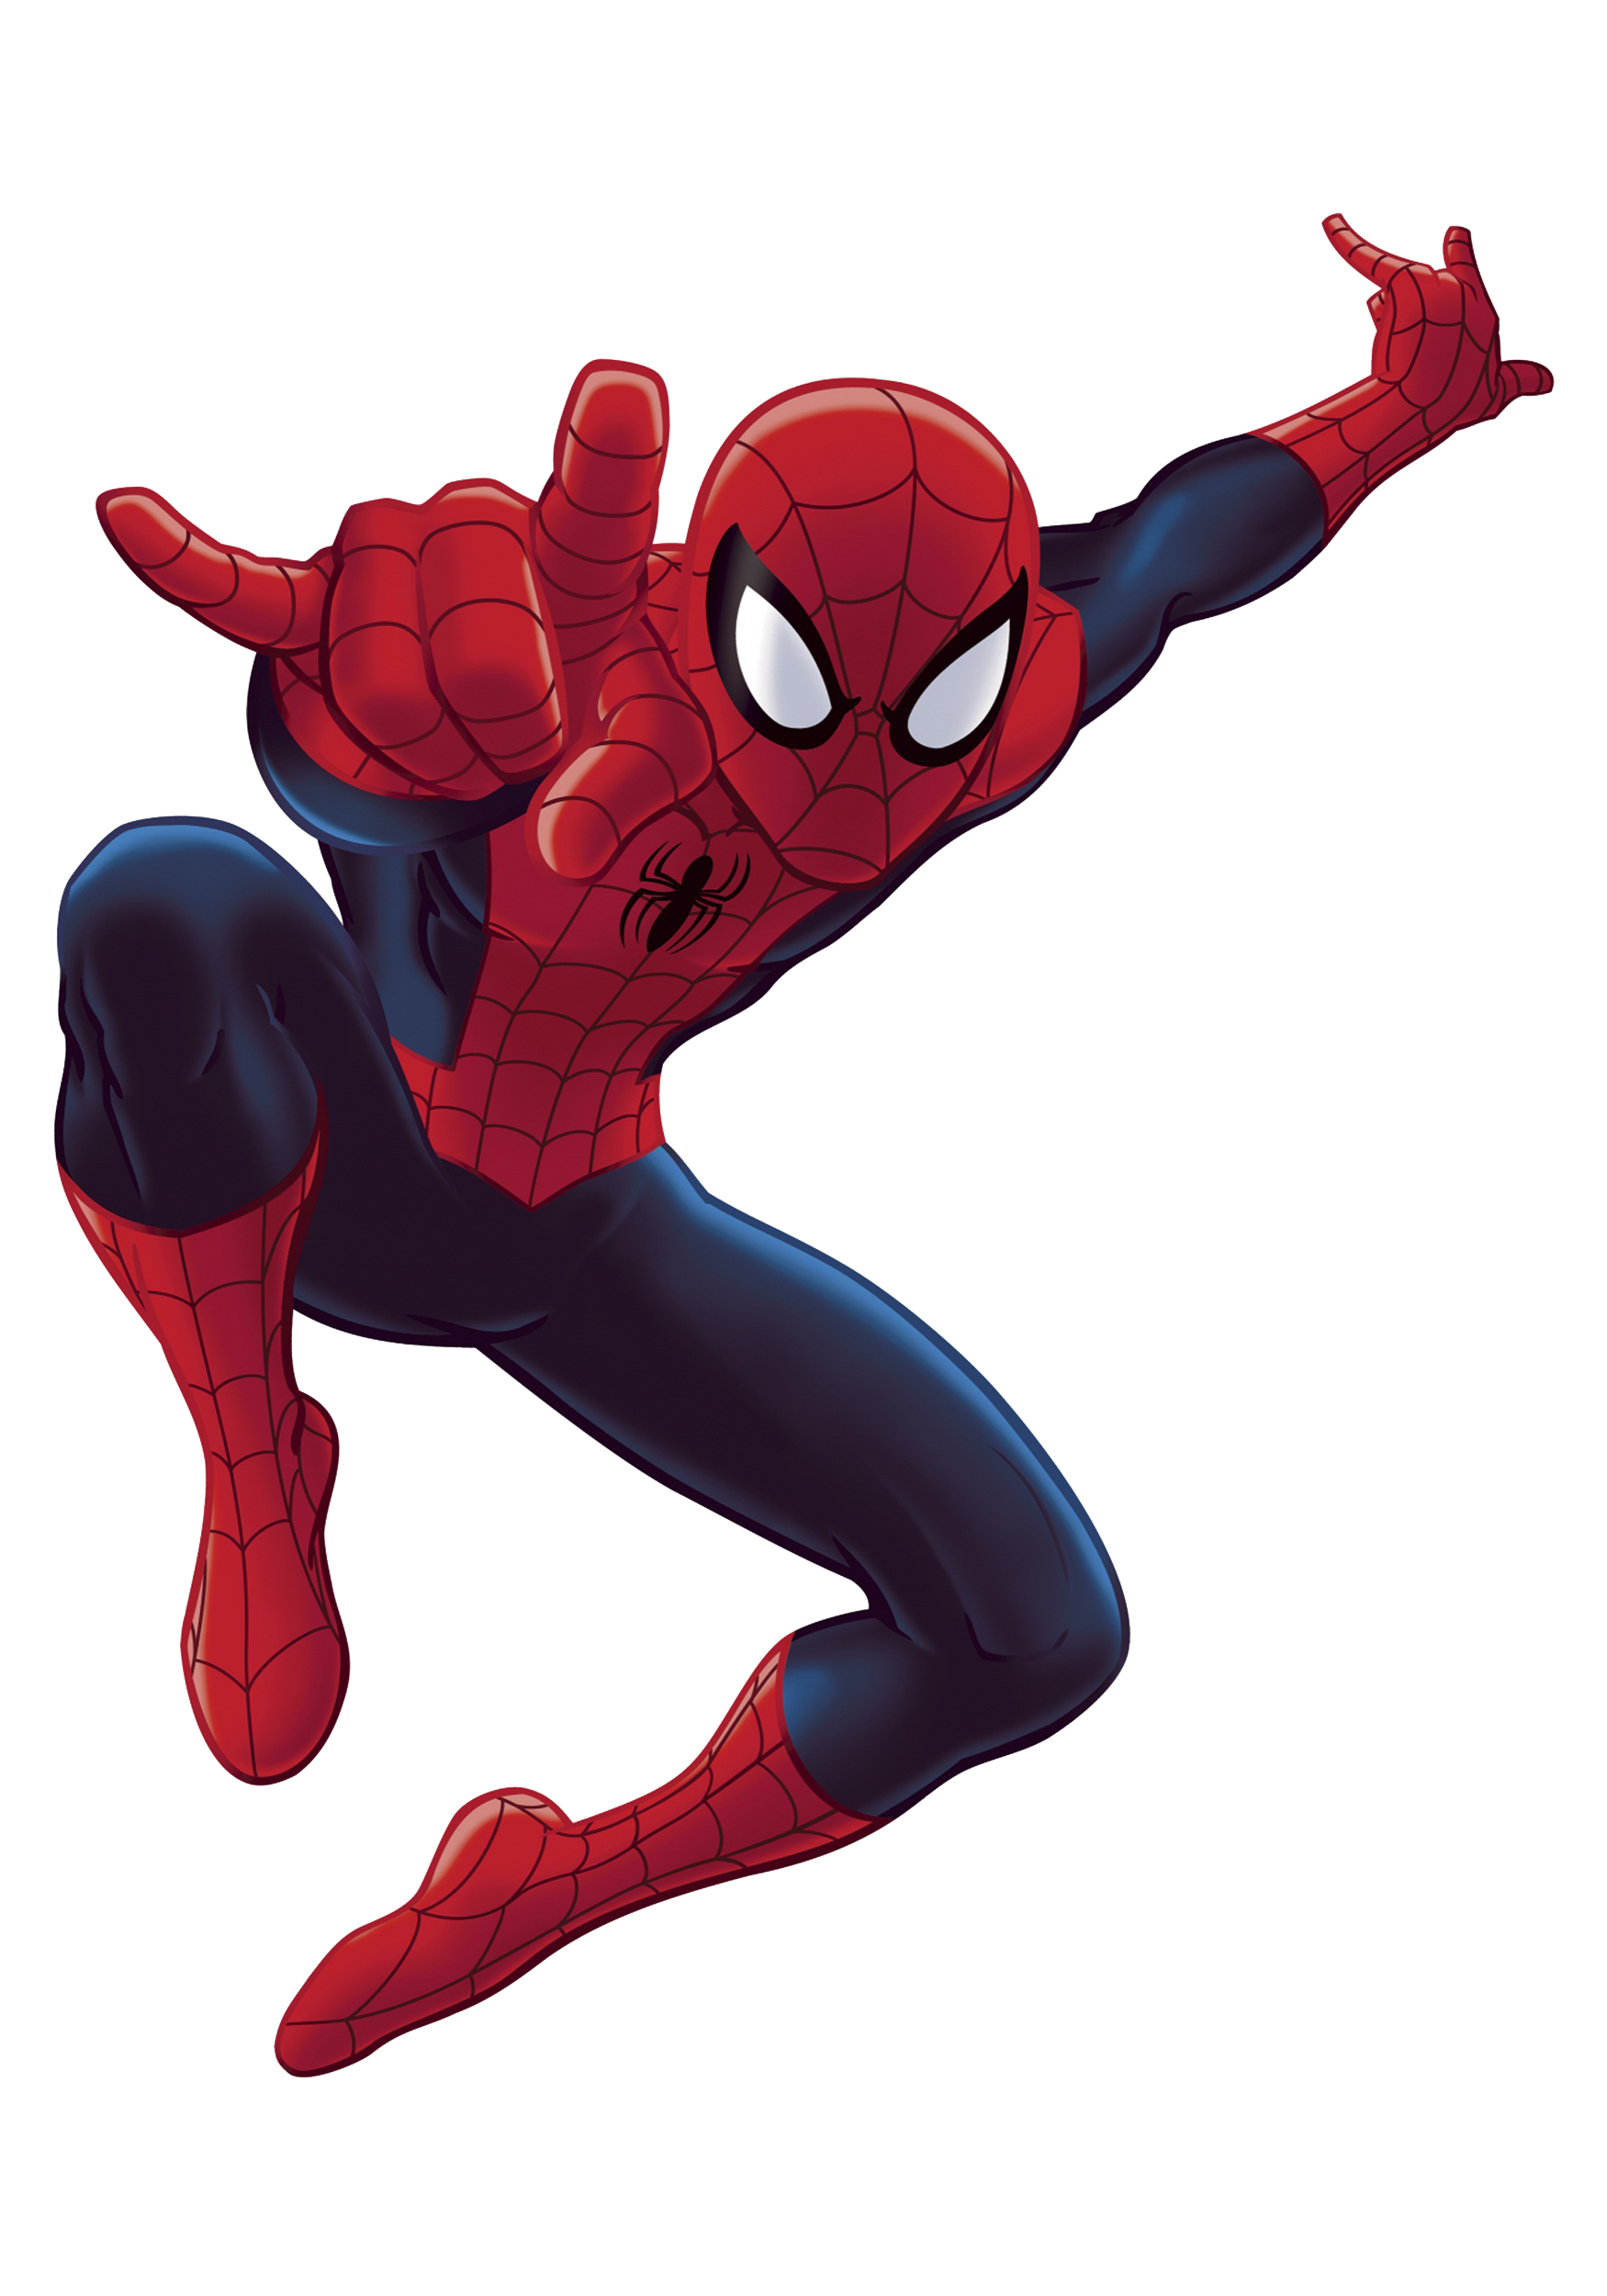 Free Spiderman Png Transparent Background